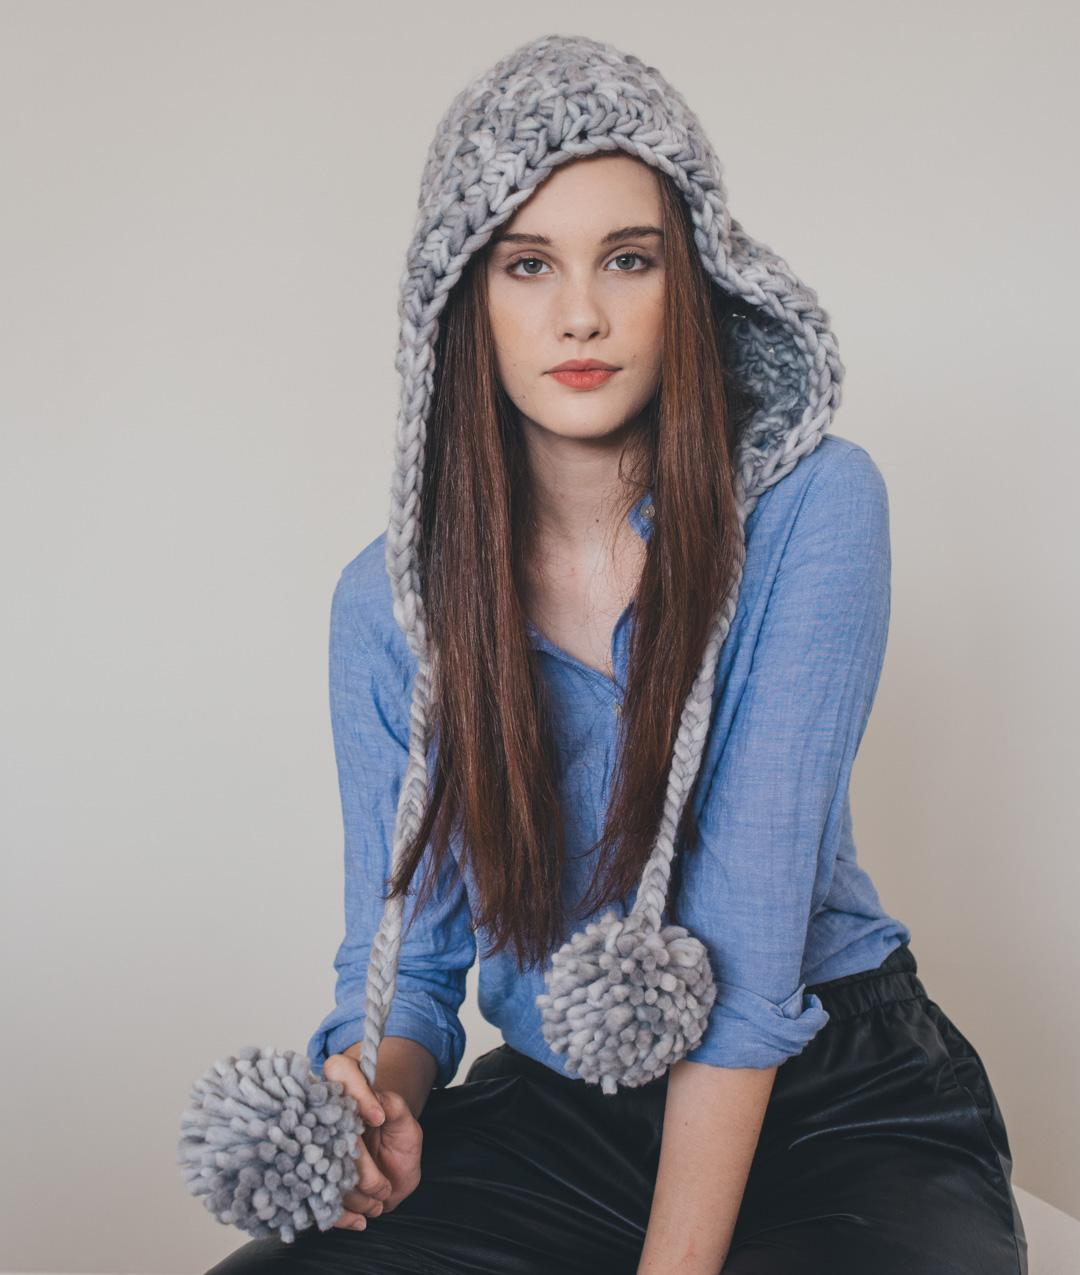 Hats, Beanies and Scarves - Wool - LILY HOOD - 1